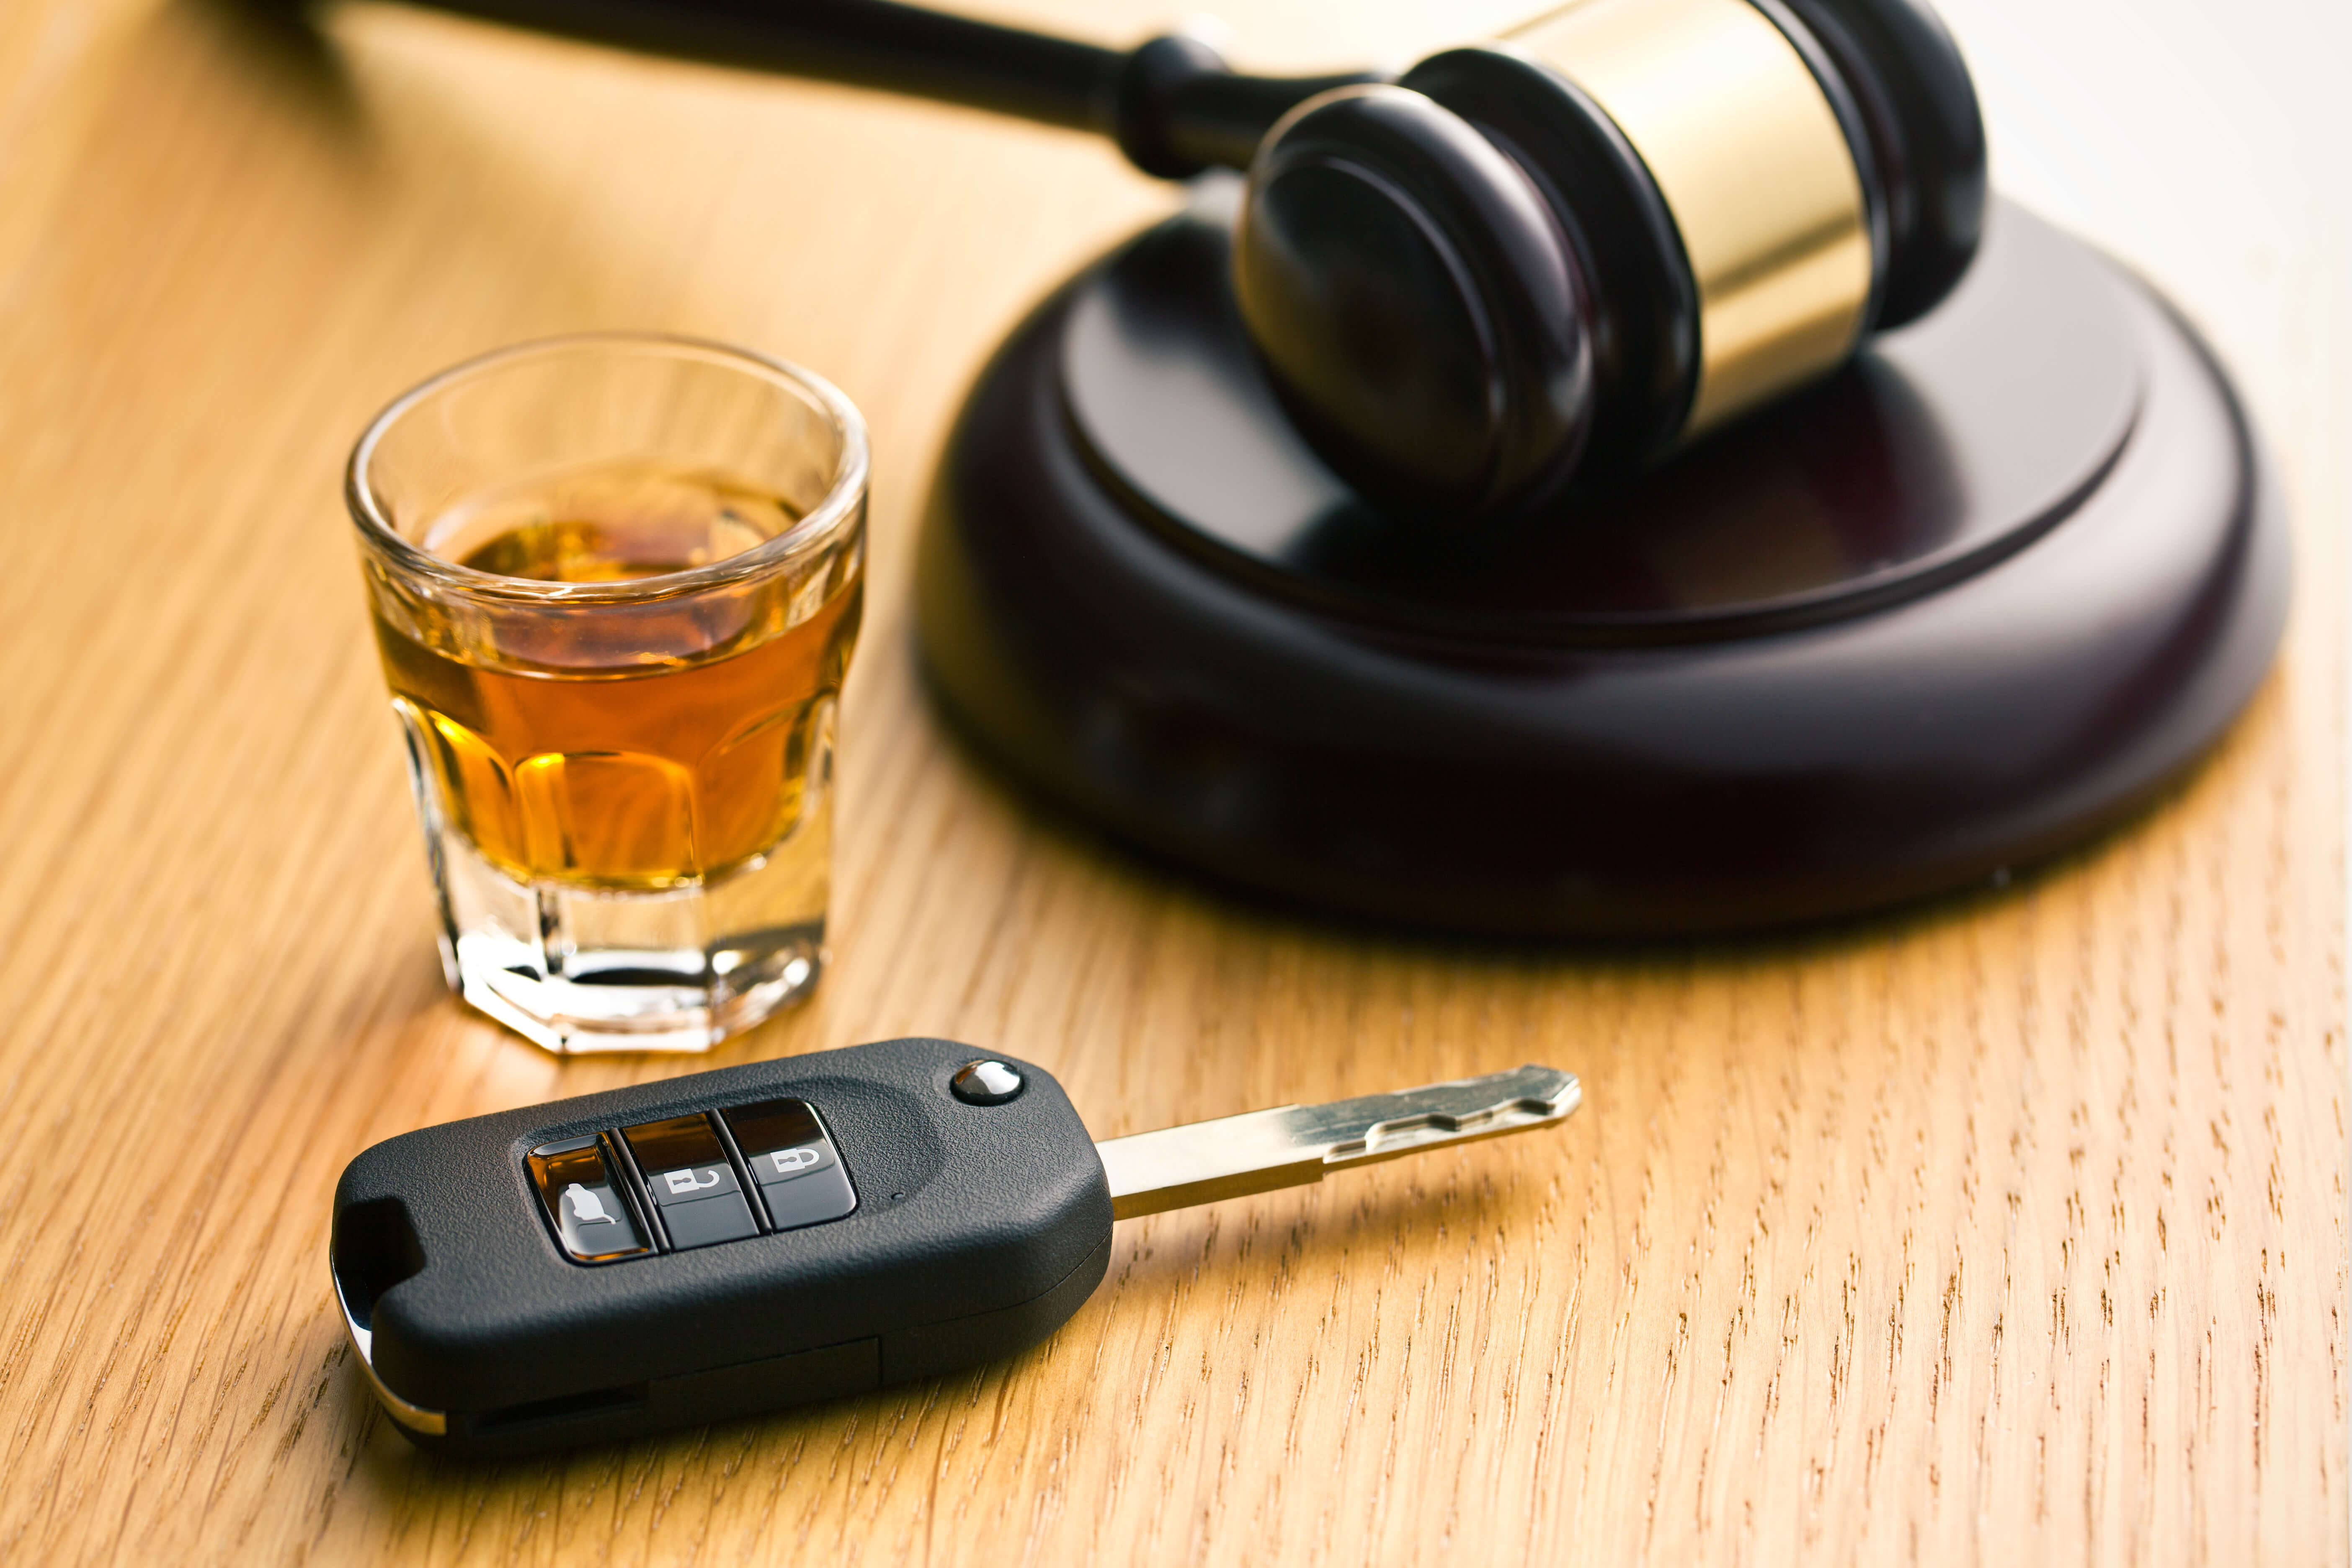 Car keys, whiskey and gavel - what is an ALR hearing